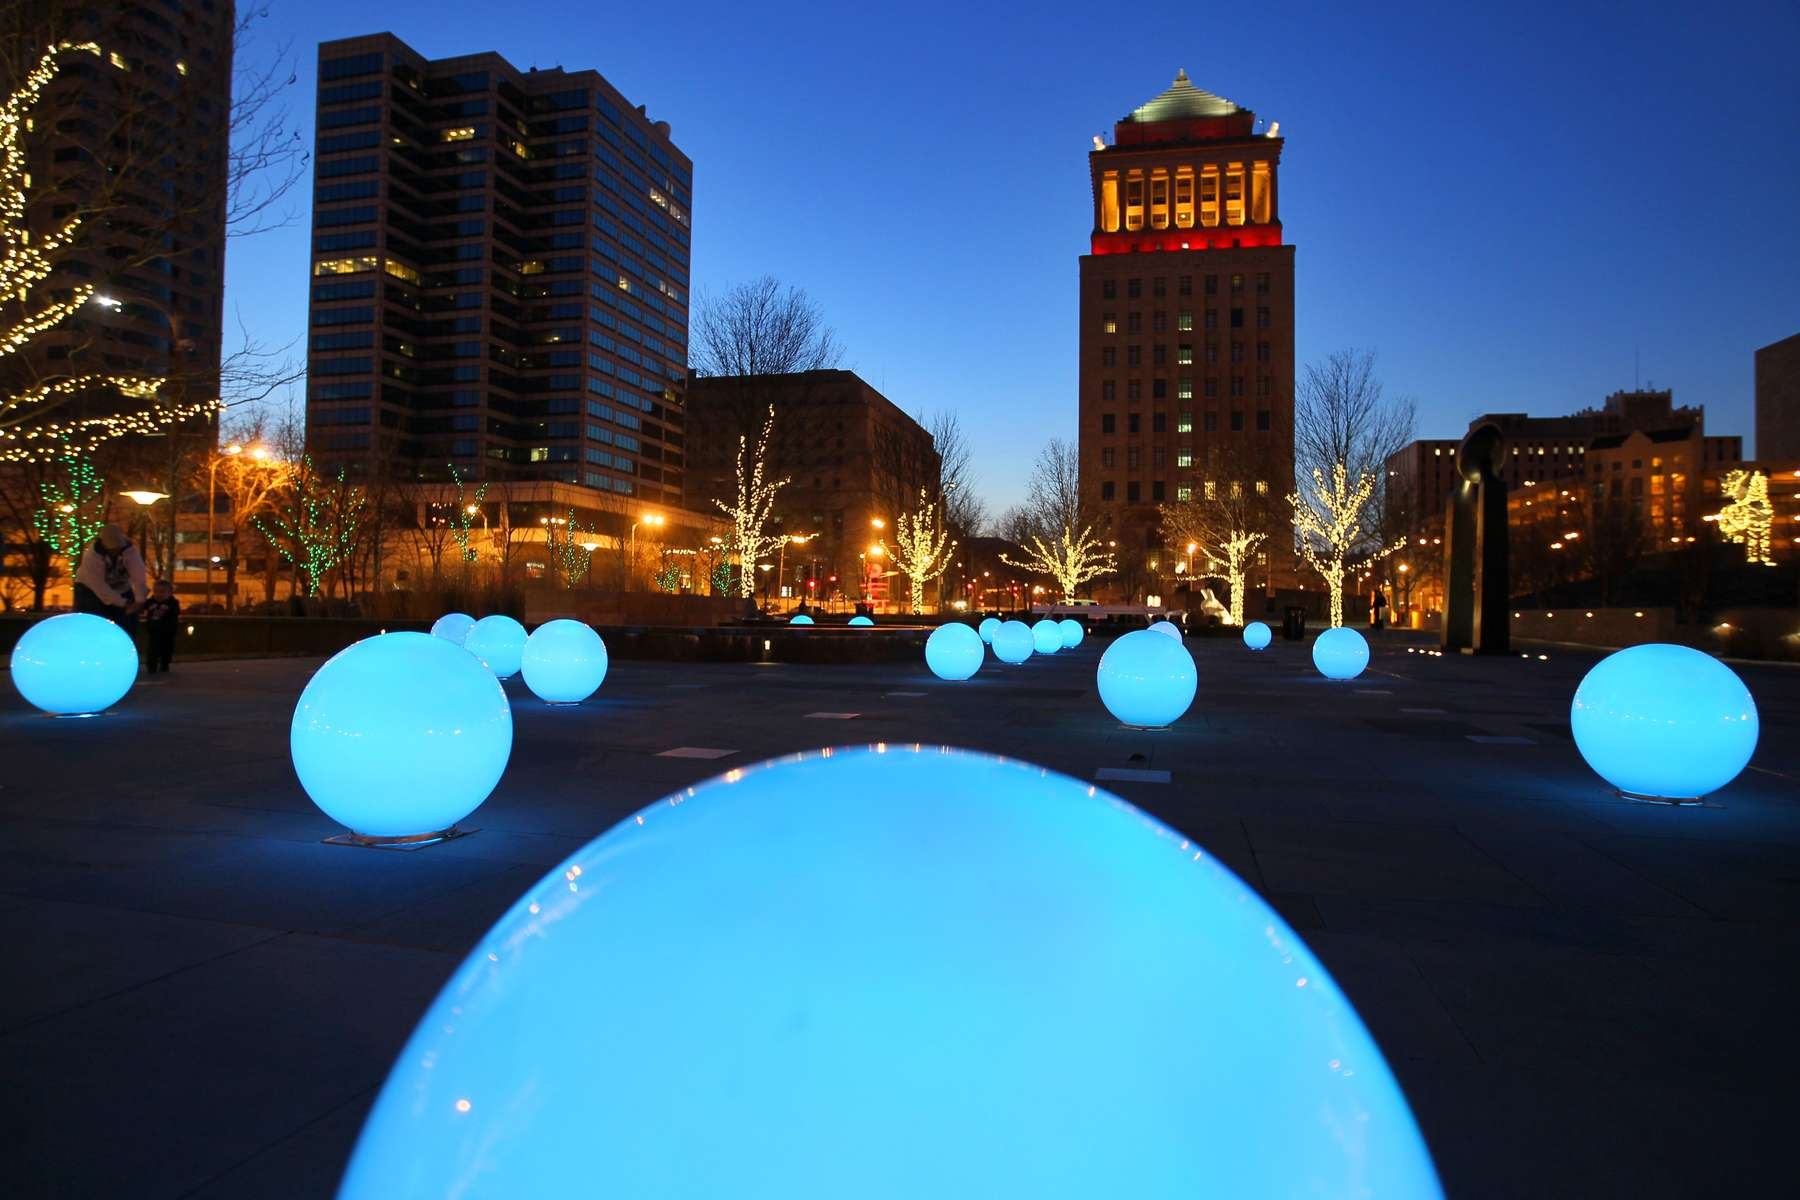 Sunday January 31, 2010--Glowing globes fill the splash and spray water fountain area of Citygarden, a public sculpture park in downtown St. Louis, on Sunday.   The 25 globes are each lit by two LED lights and are programed to glow in an every changing a rainbow of hues.  The globes will be turned on every night through the end of February from 5pm-midnight.  The globes were installed by Hydro Dramatics, a St. Louis fountain design company.  To see more photos of the glowing globes go to stltoday.com/multimedia .David Carson     dcarson@post-dispatch.com